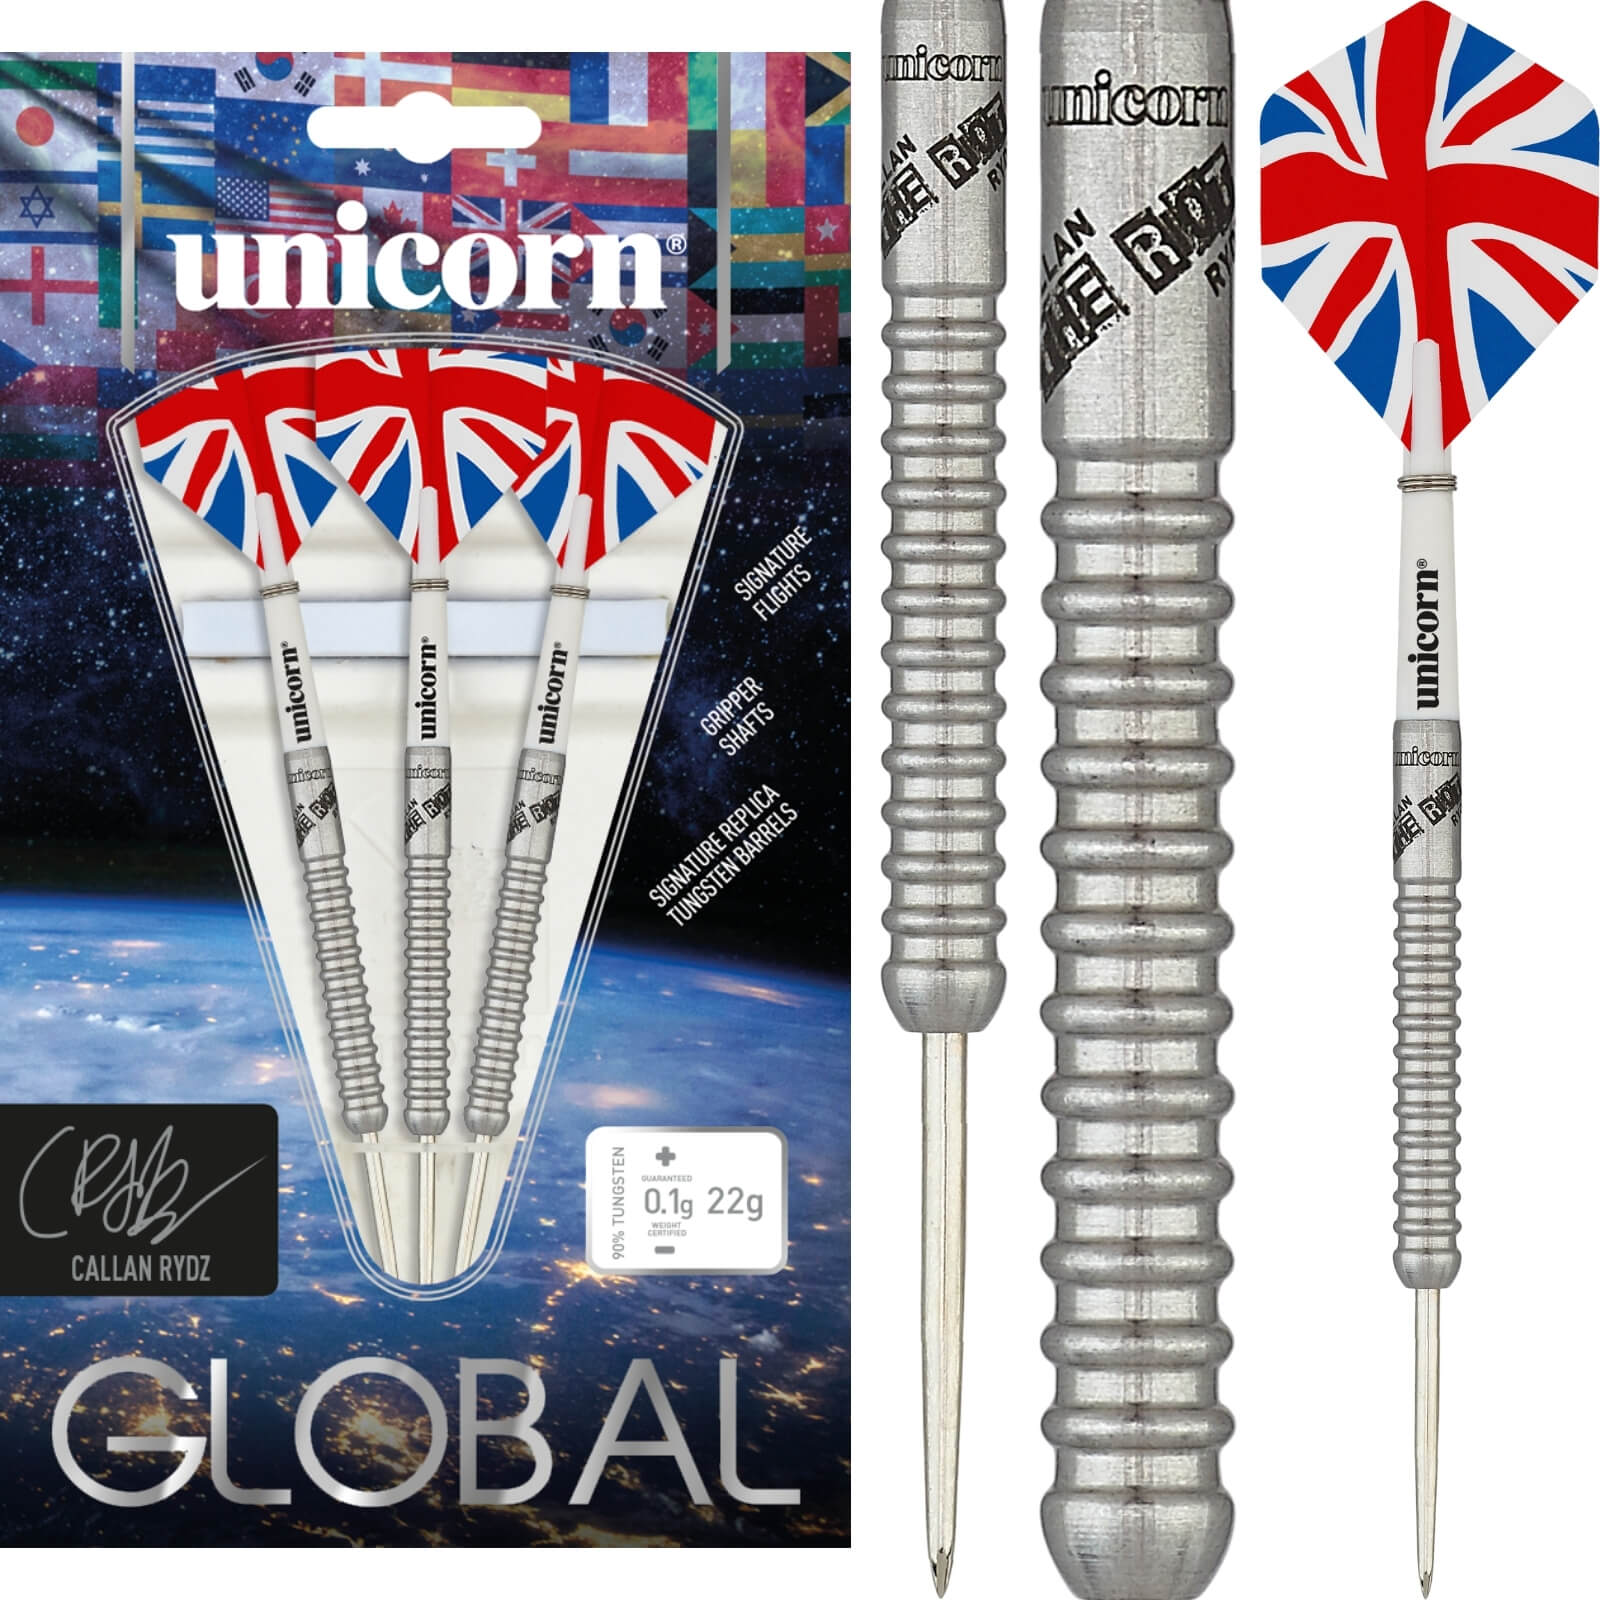 Darts - Unicorn - Callan Rydz Darts - Steel Tip - 90% Tungsten - 22g